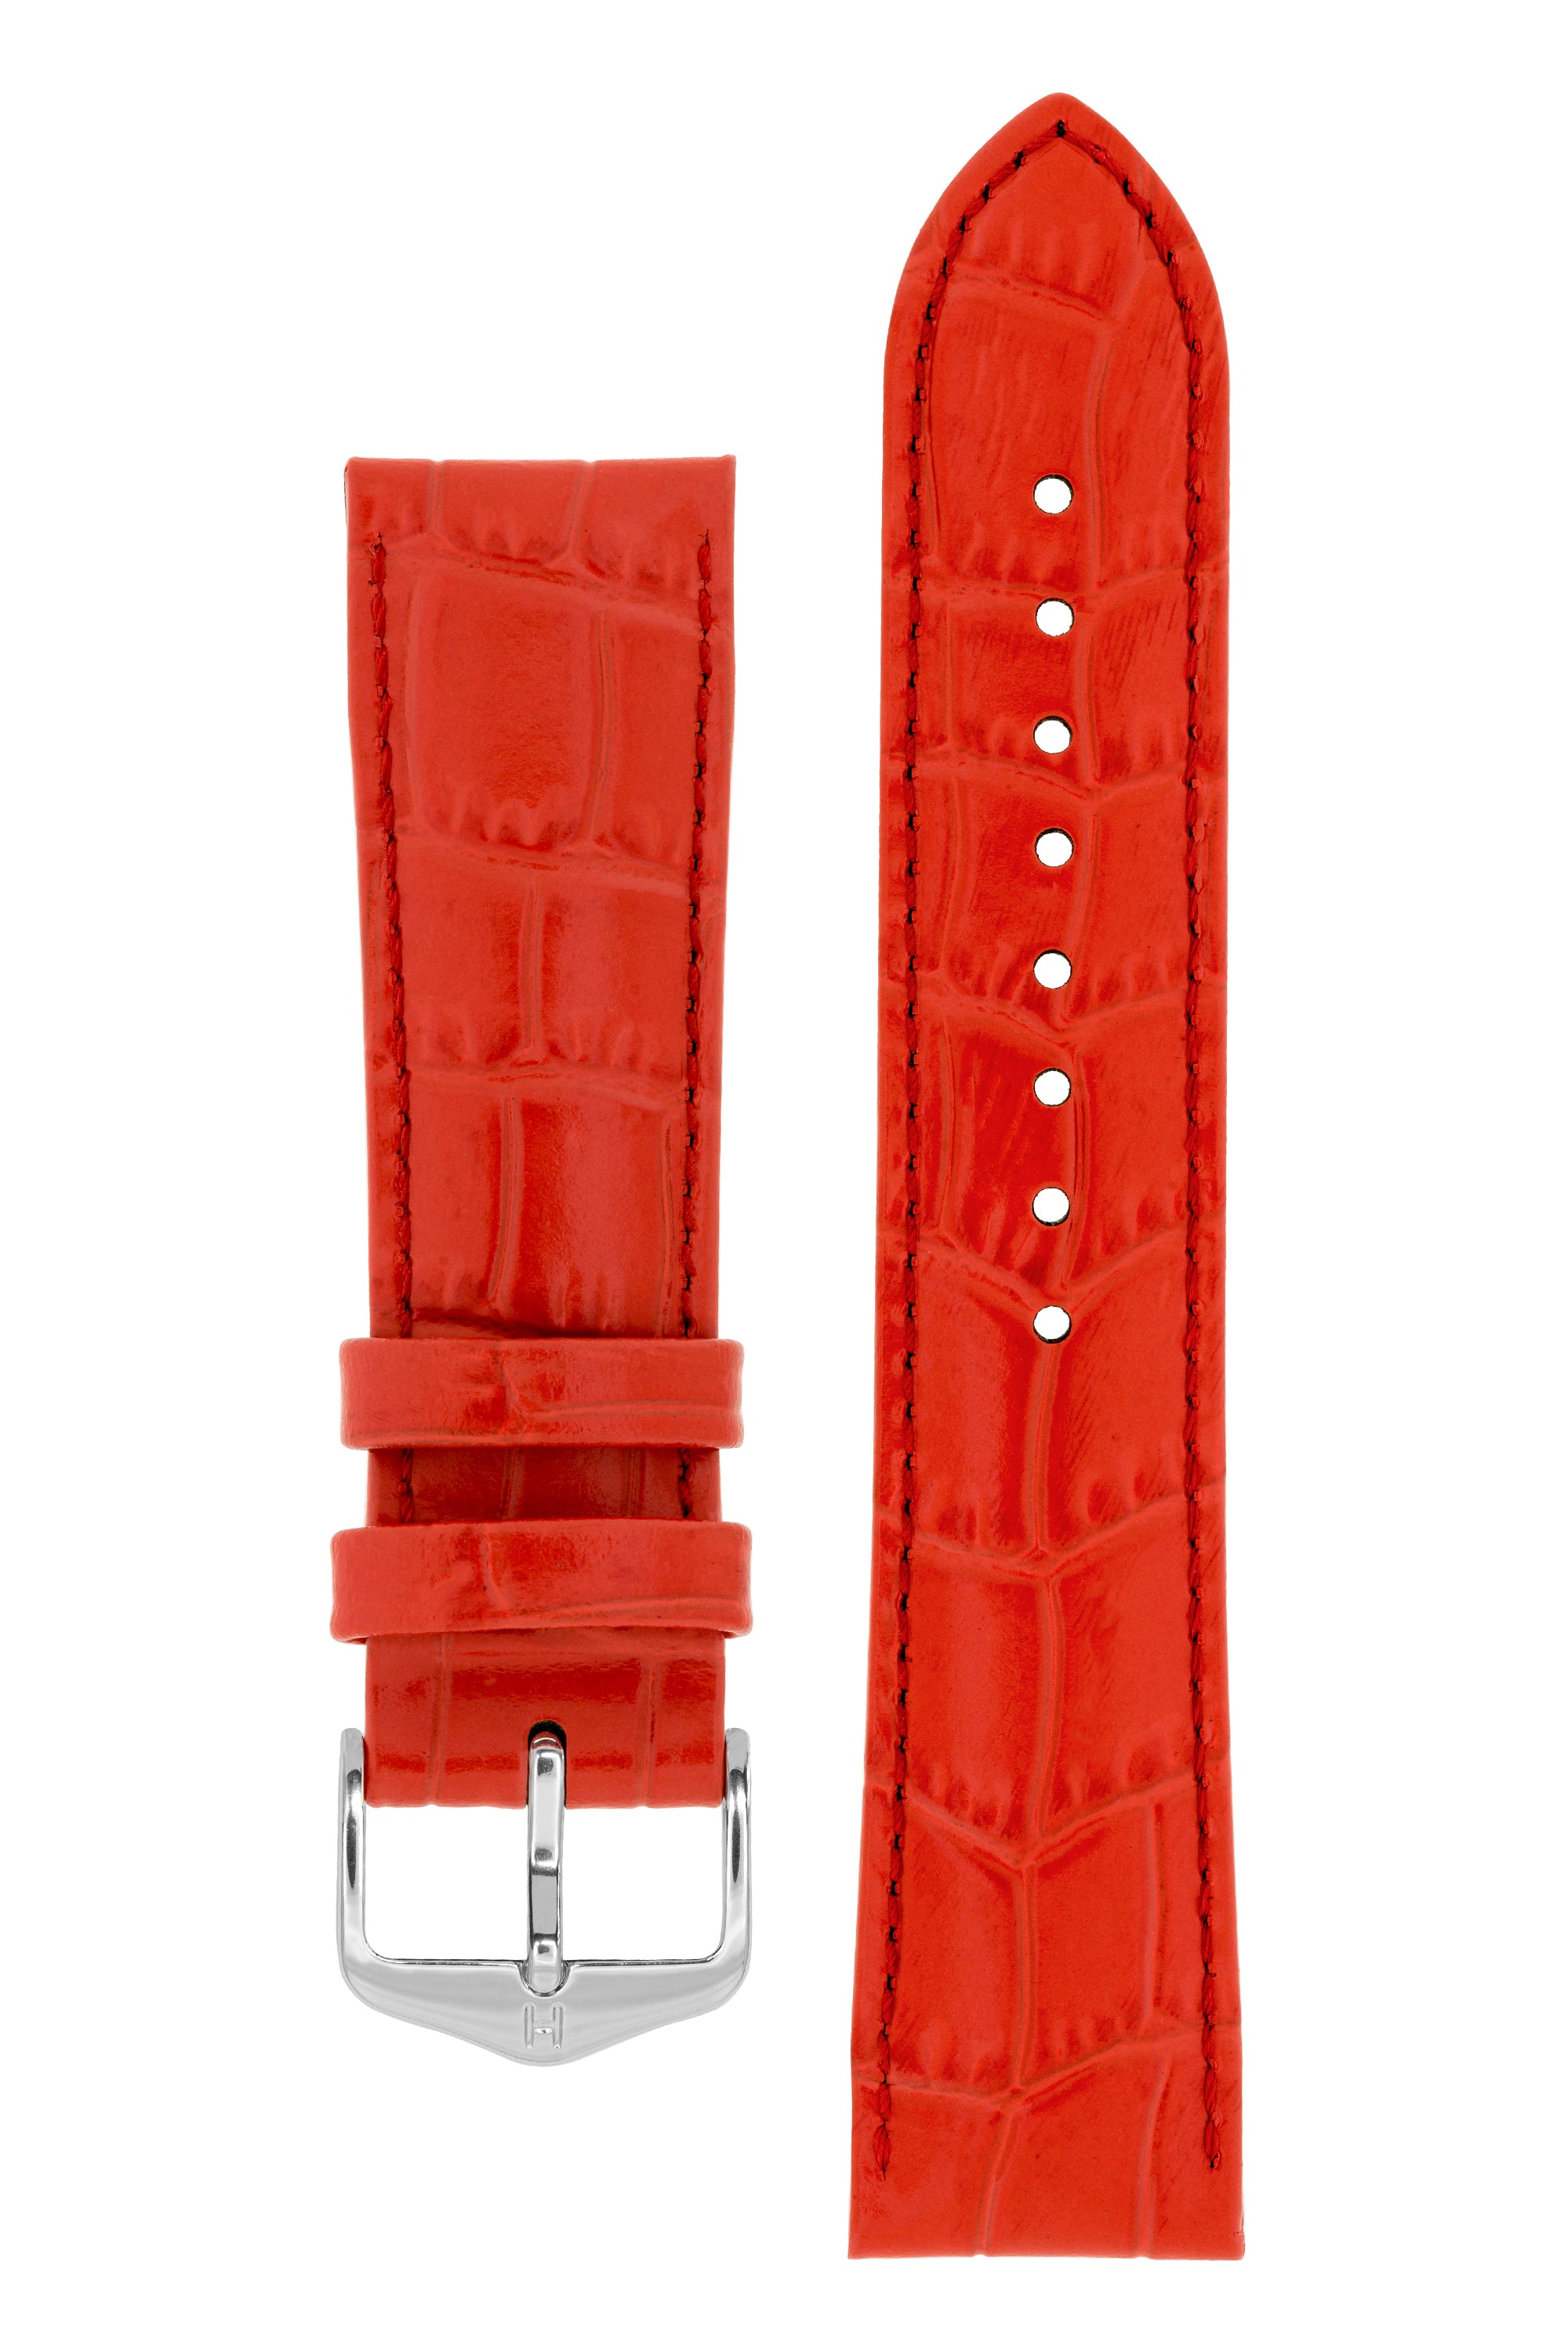 Hirsch LOUISIANALOOK Alligator Embossed Leather Watch Strap in RED